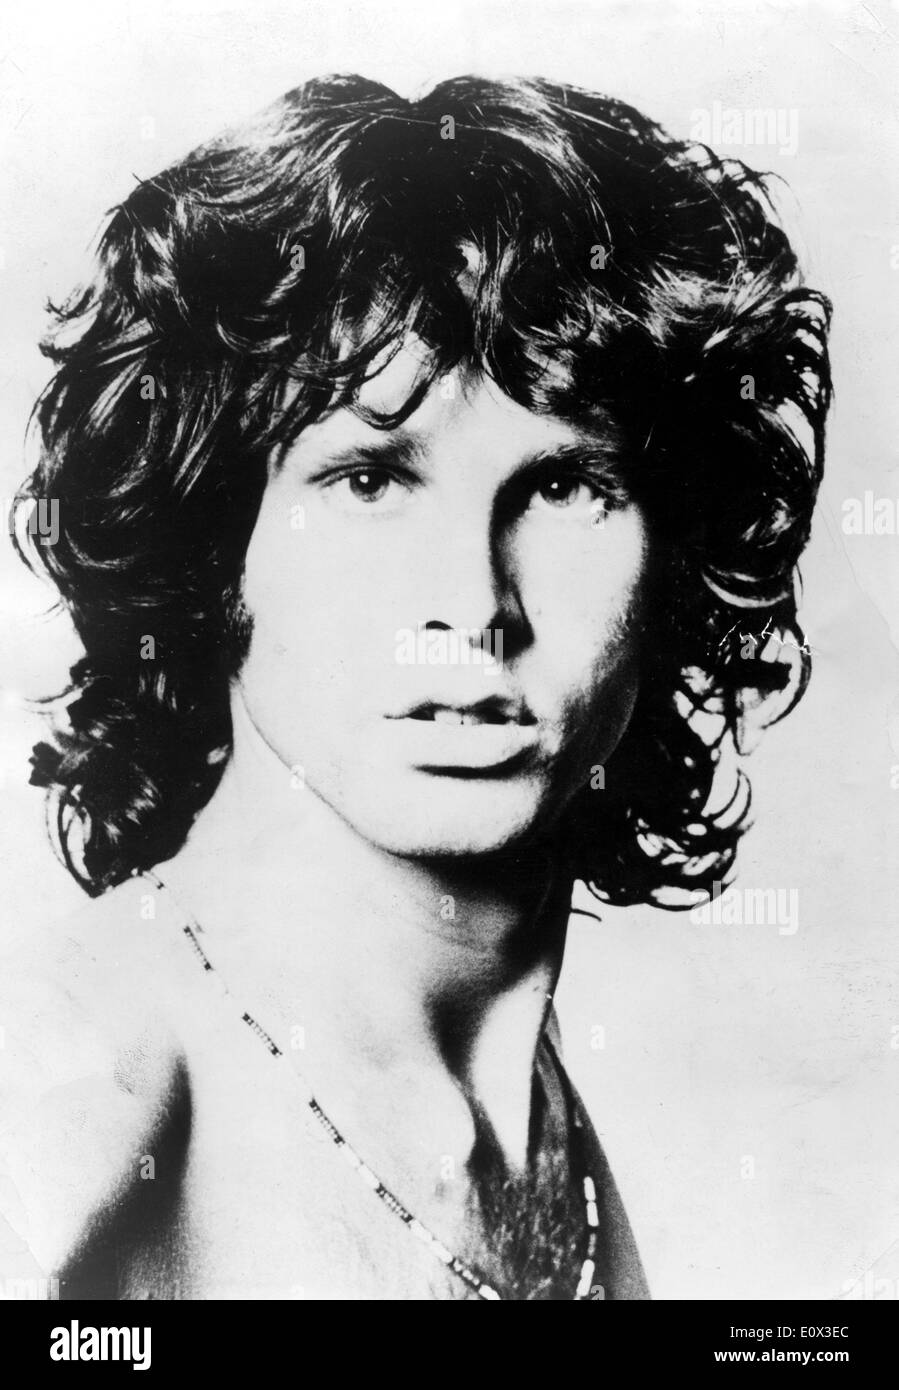 Portrait of The Doors lead singer Jim Morrison  sc 1 st  Alamy & Portrait of The Doors lead singer Jim Morrison Stock Photo: 69414980 ...